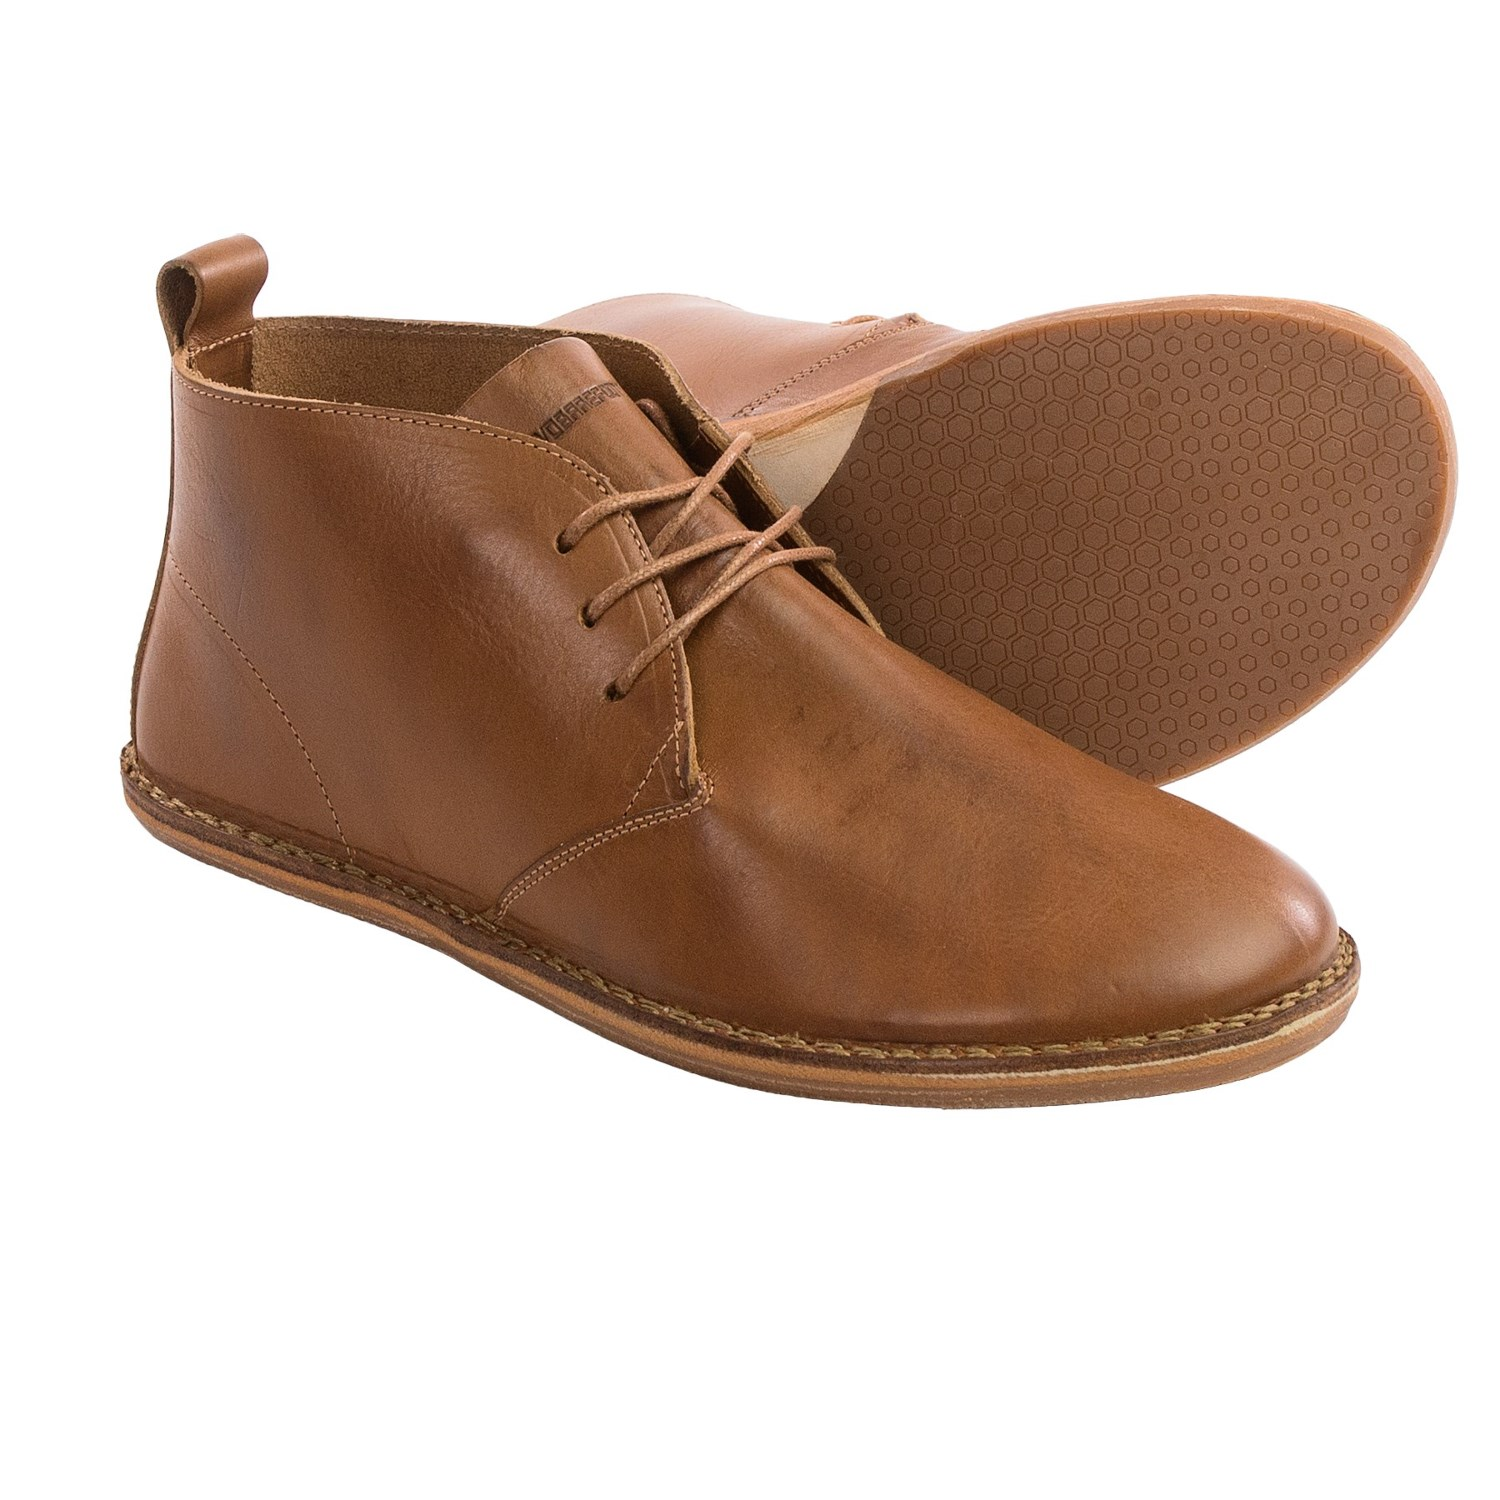 Chukka boots (/ ˈ tʃ ʌ k ə /) are ankle-high leather boots with suede or leather uppers, leather or rubber soles, and open lacing with two or three pairs of eyelets. The name chukka possibly comes from the game of polo, where a chukka is a period of play.